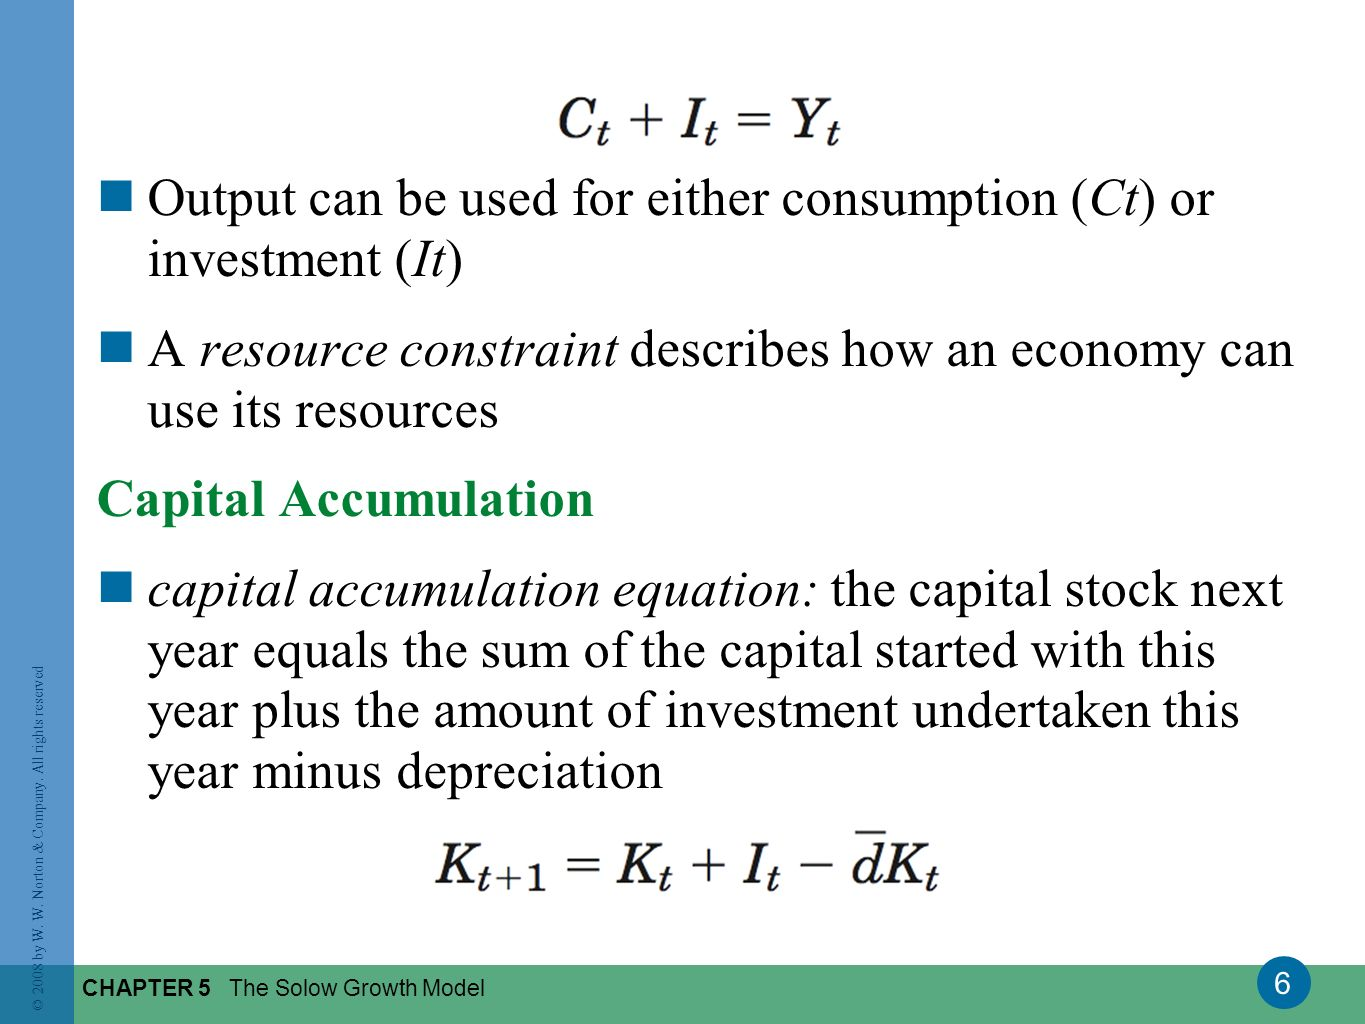 Output can be used for either consumption (Ct) or investment (It)